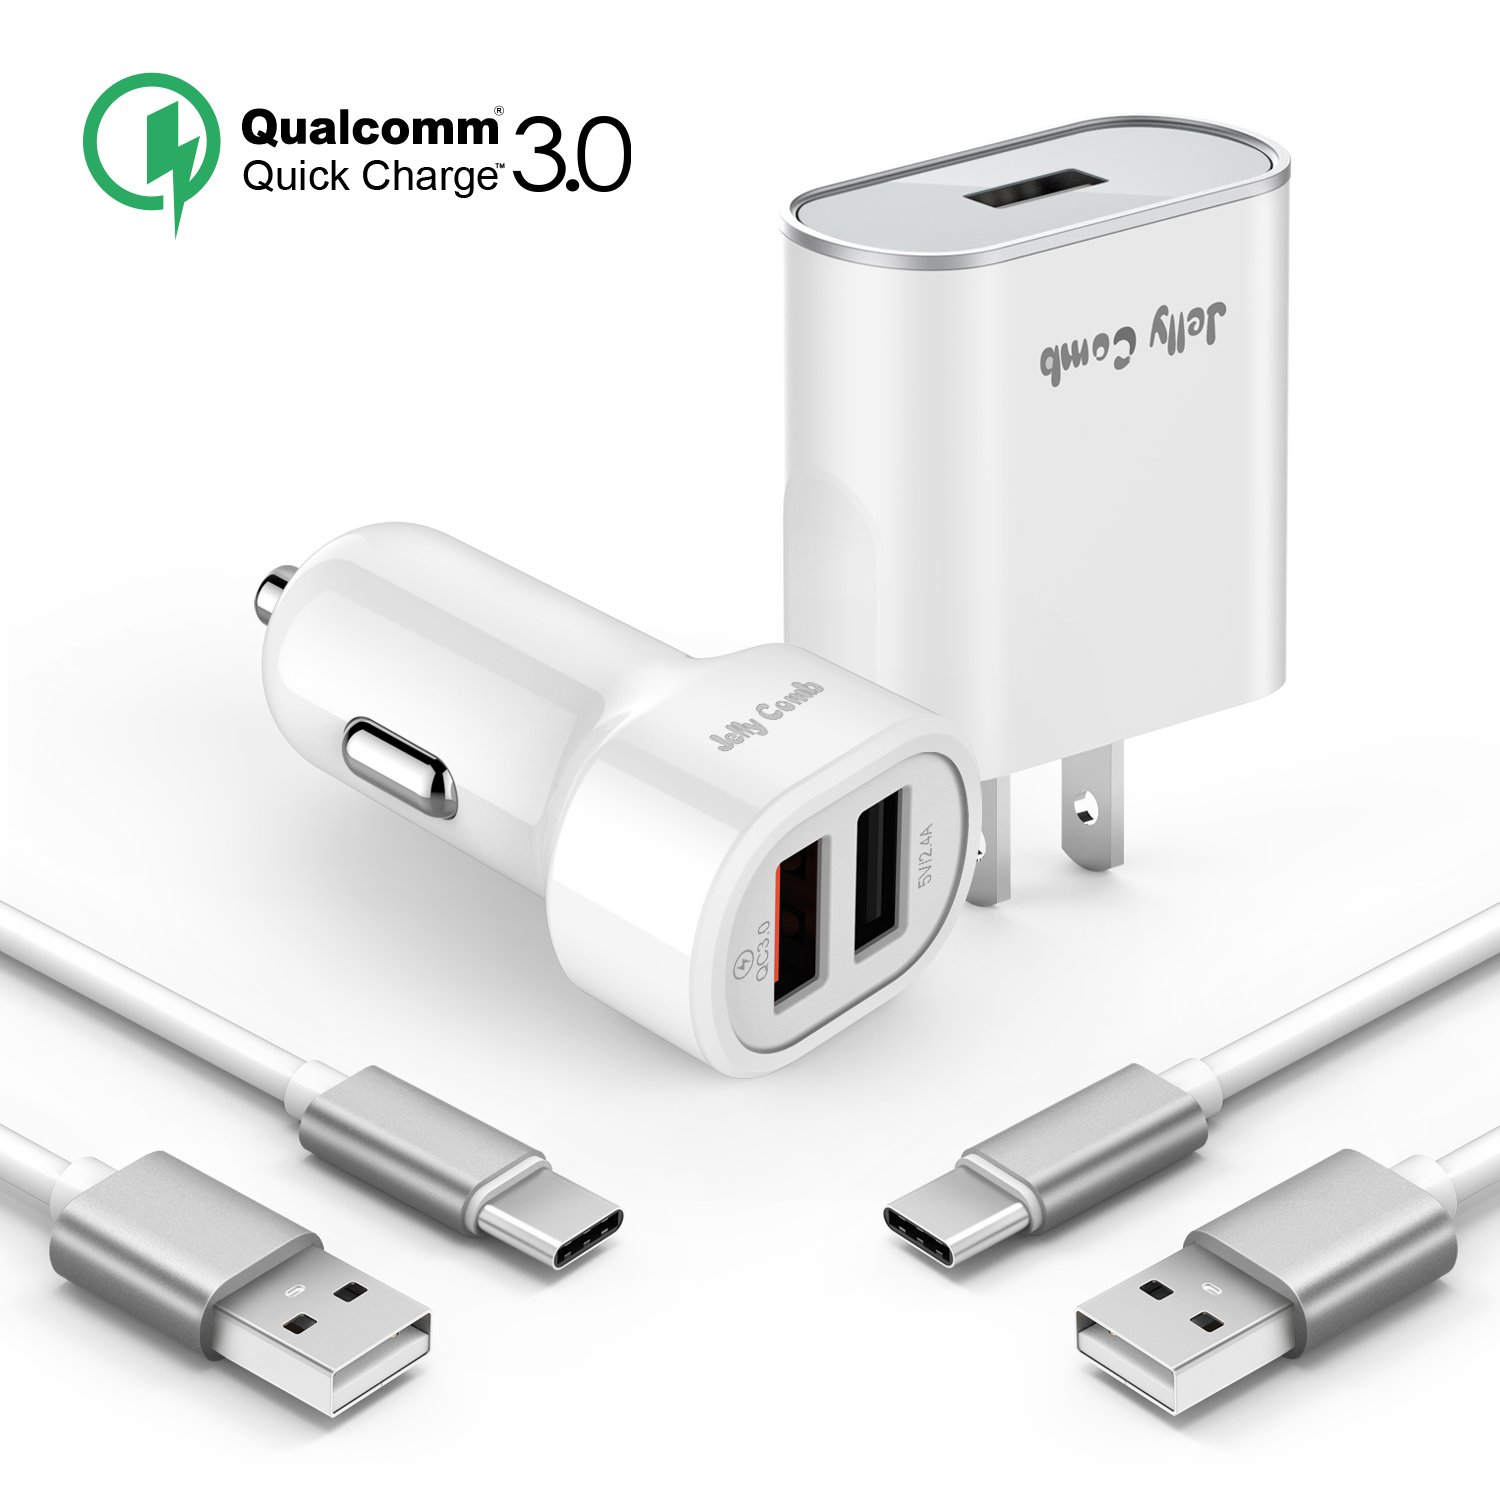 Quick Charge 3.0 Charger Kit Compatible for Samsung Galaxy S9 / Note 8 / S8, Jelly Comb Dual USB Car Charger + Wall Charger + 2 Pack USB Type C Cables Compatible for Galaxy S8 Plus, S9 Plus (White)